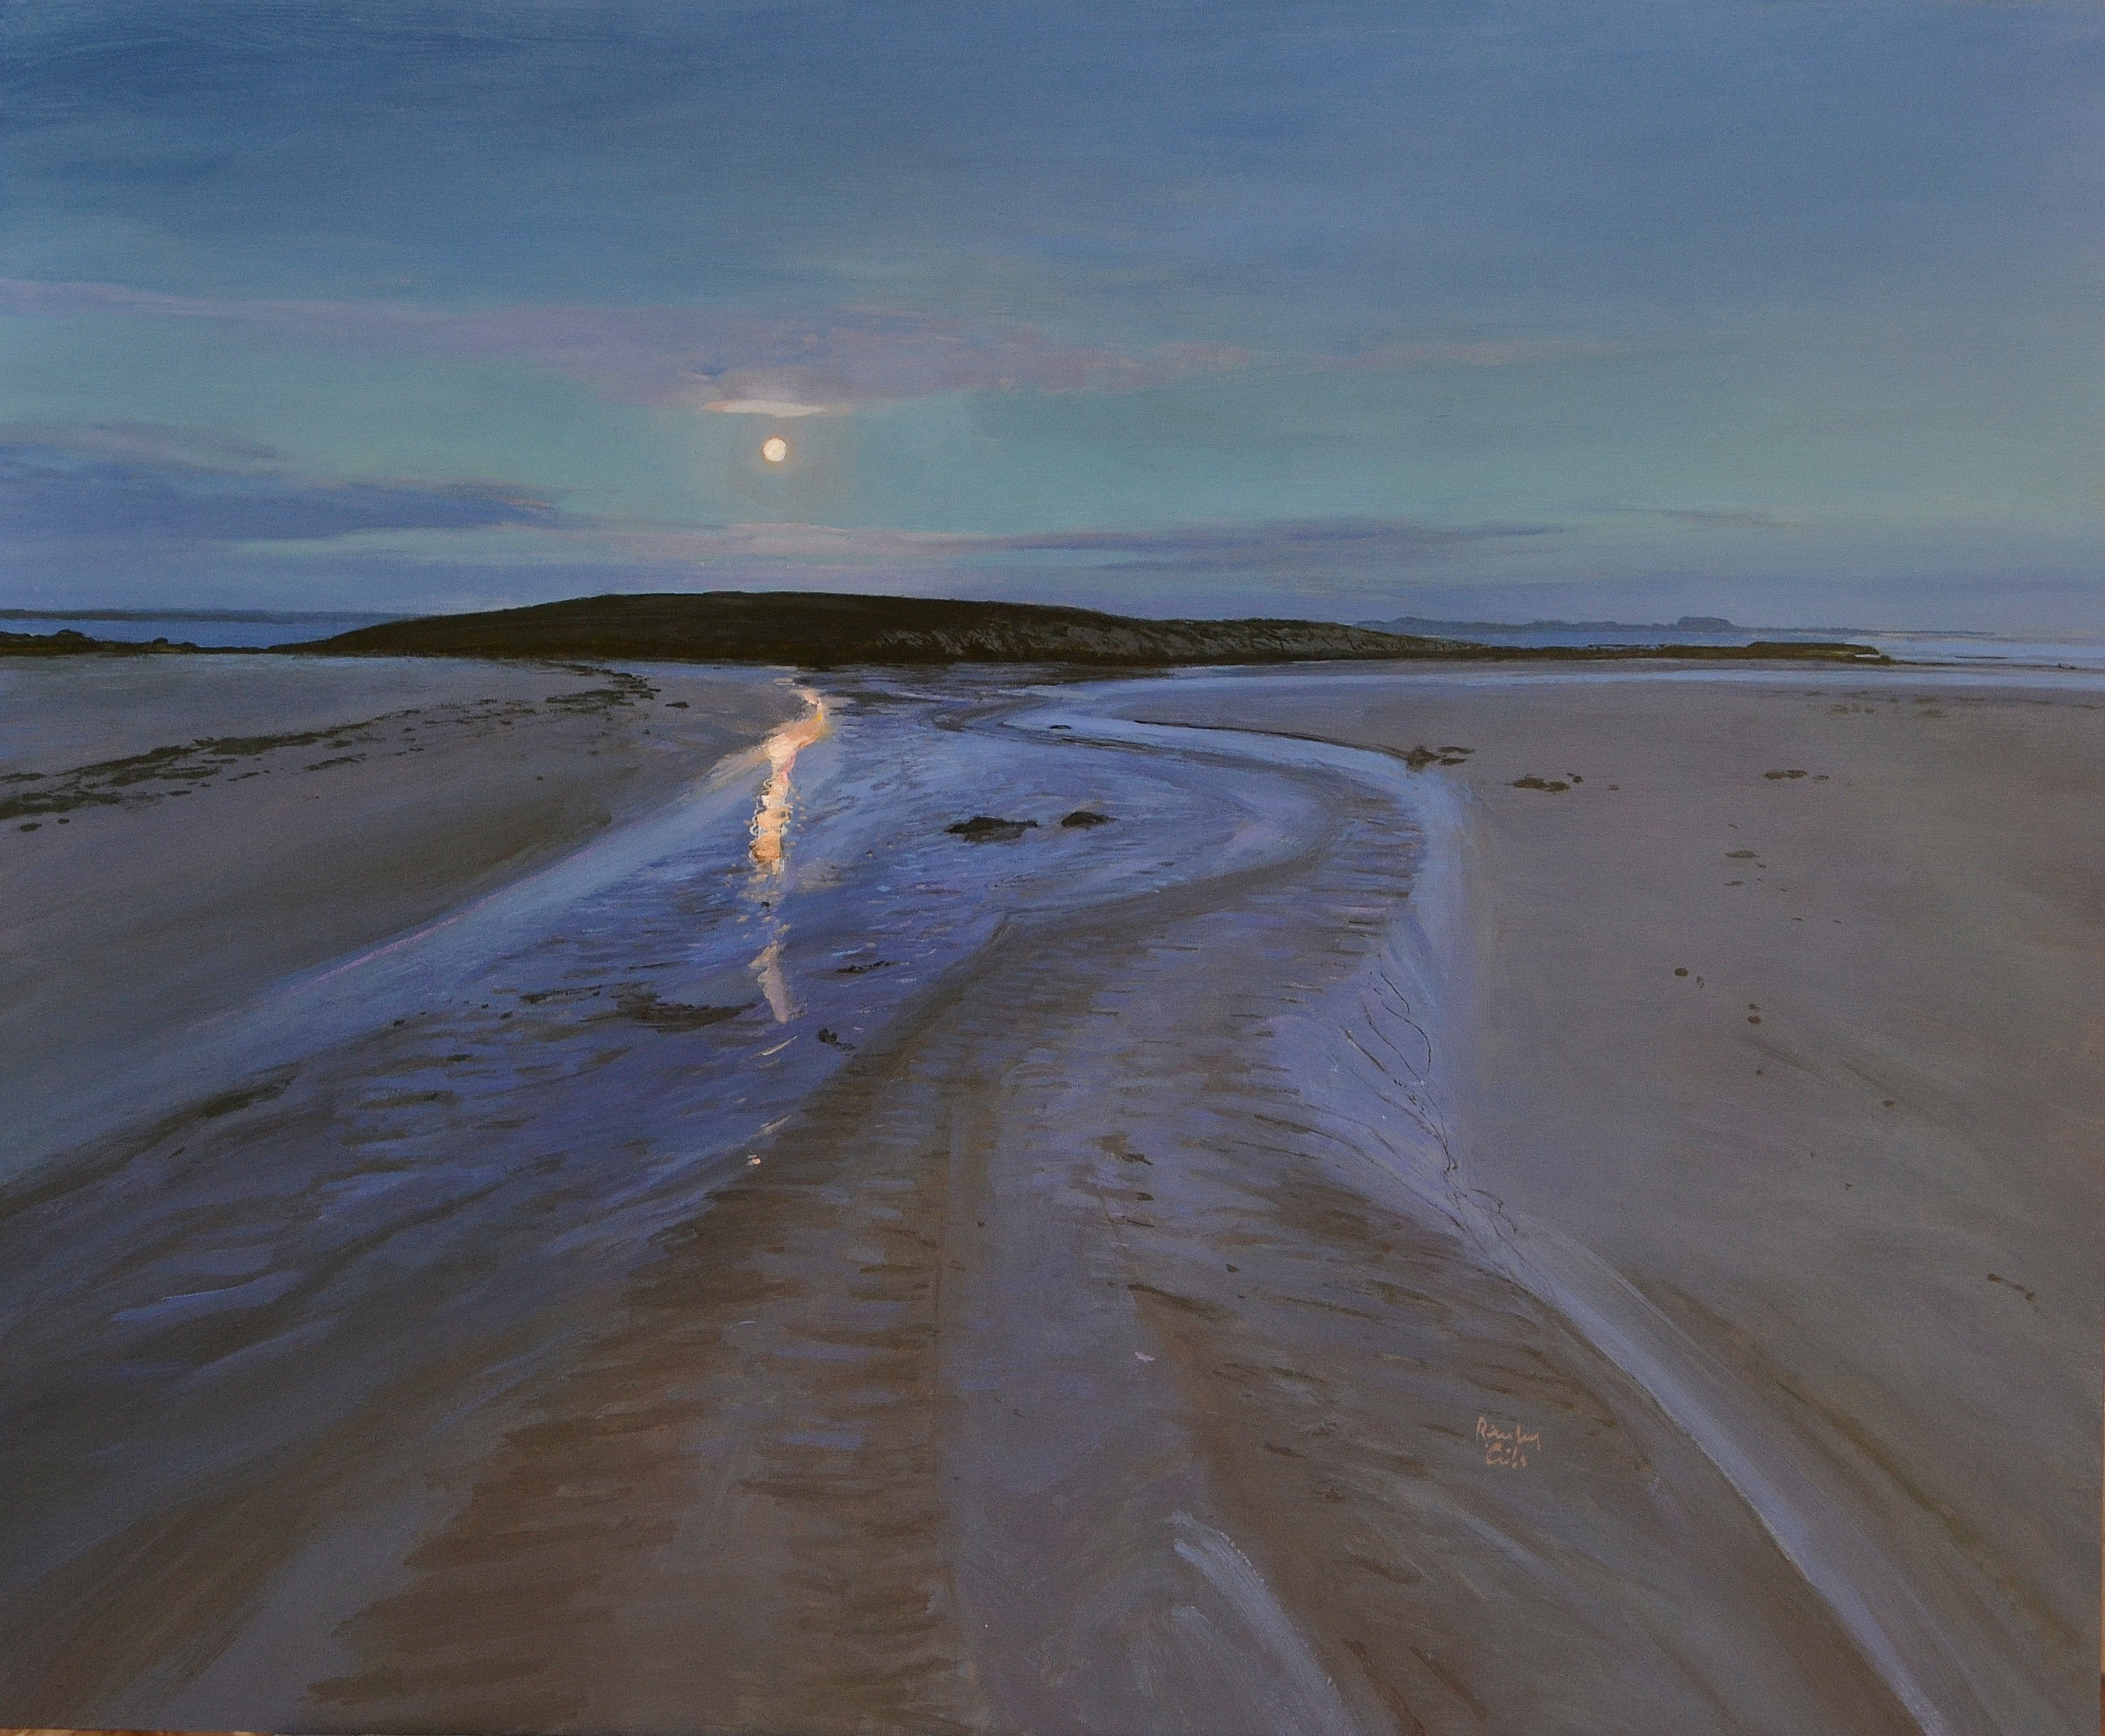 Moonlight, Iona beach 2010